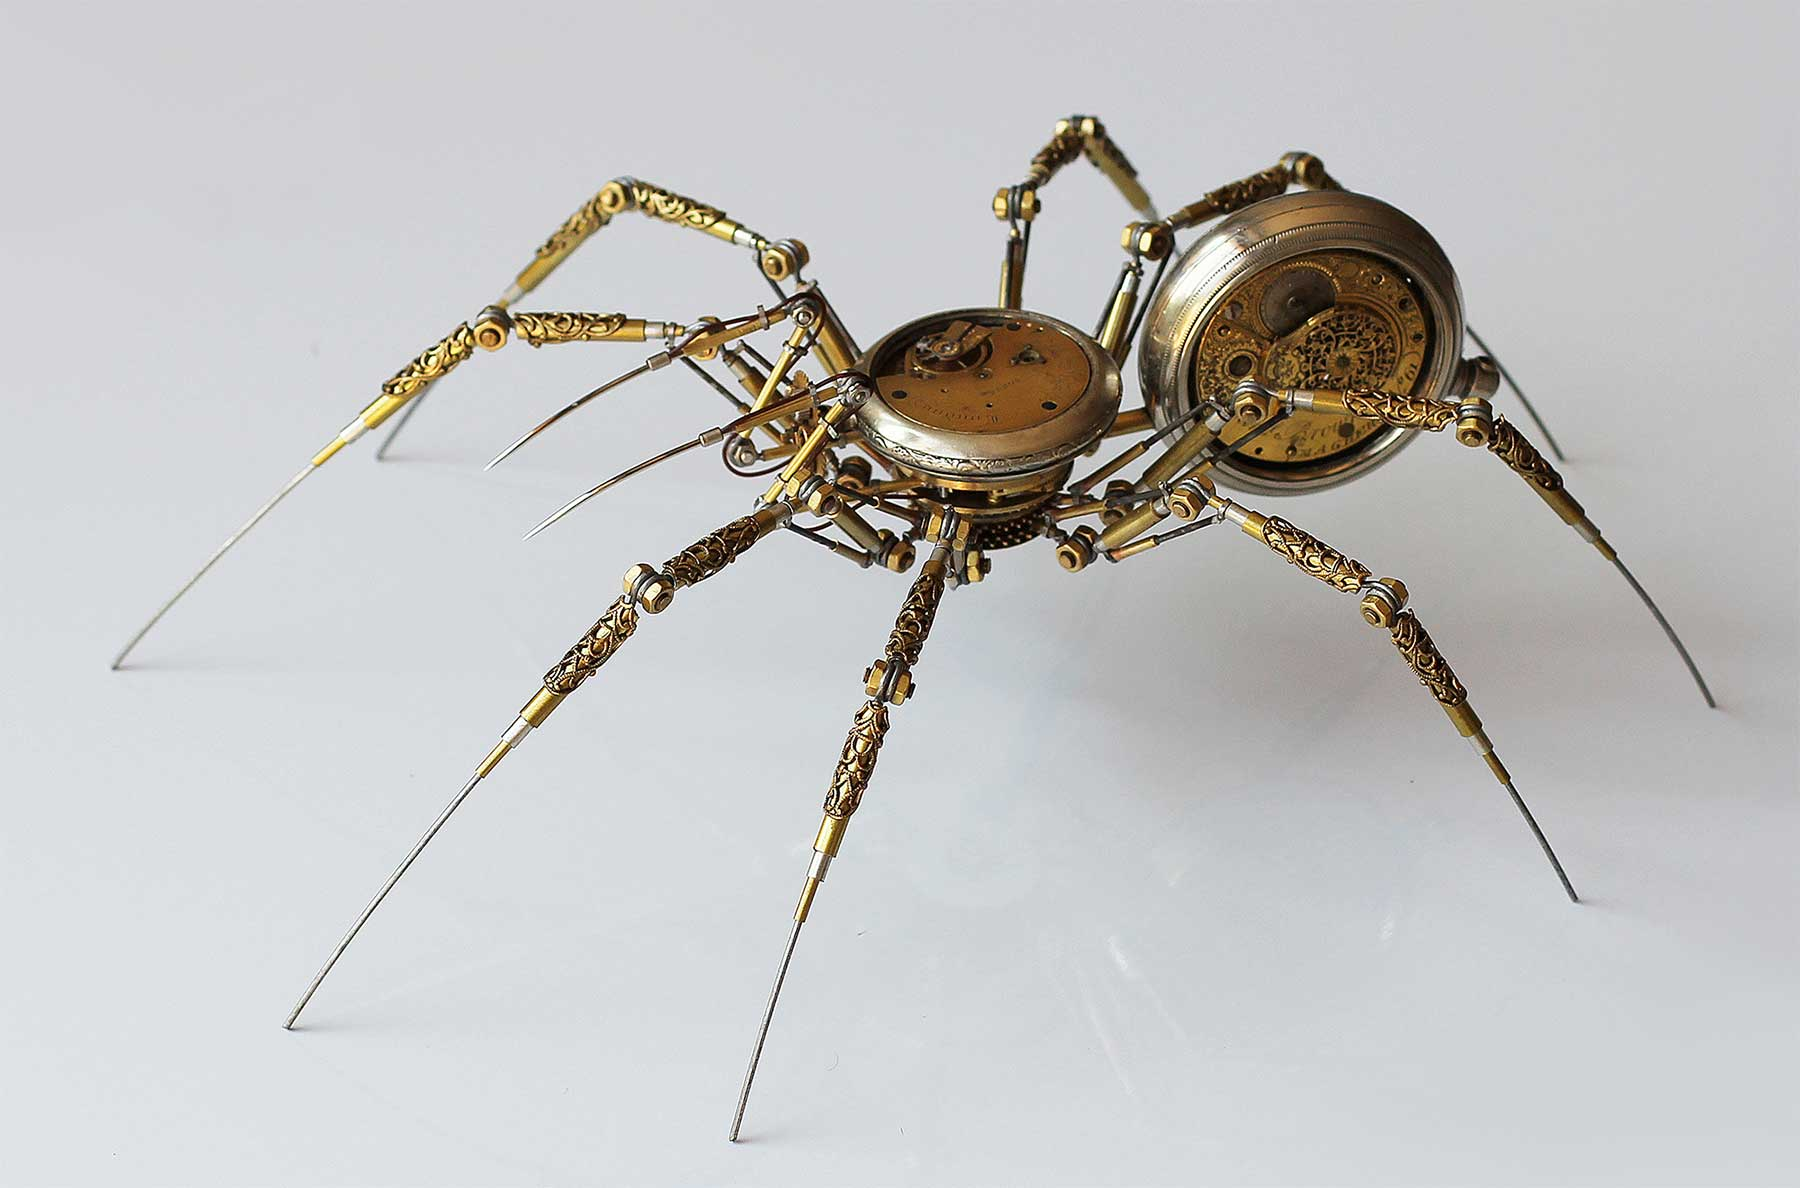 Steampunk Spiders von Peter Szucsy Steampunk-Spiders-Peter-Szucsy_01